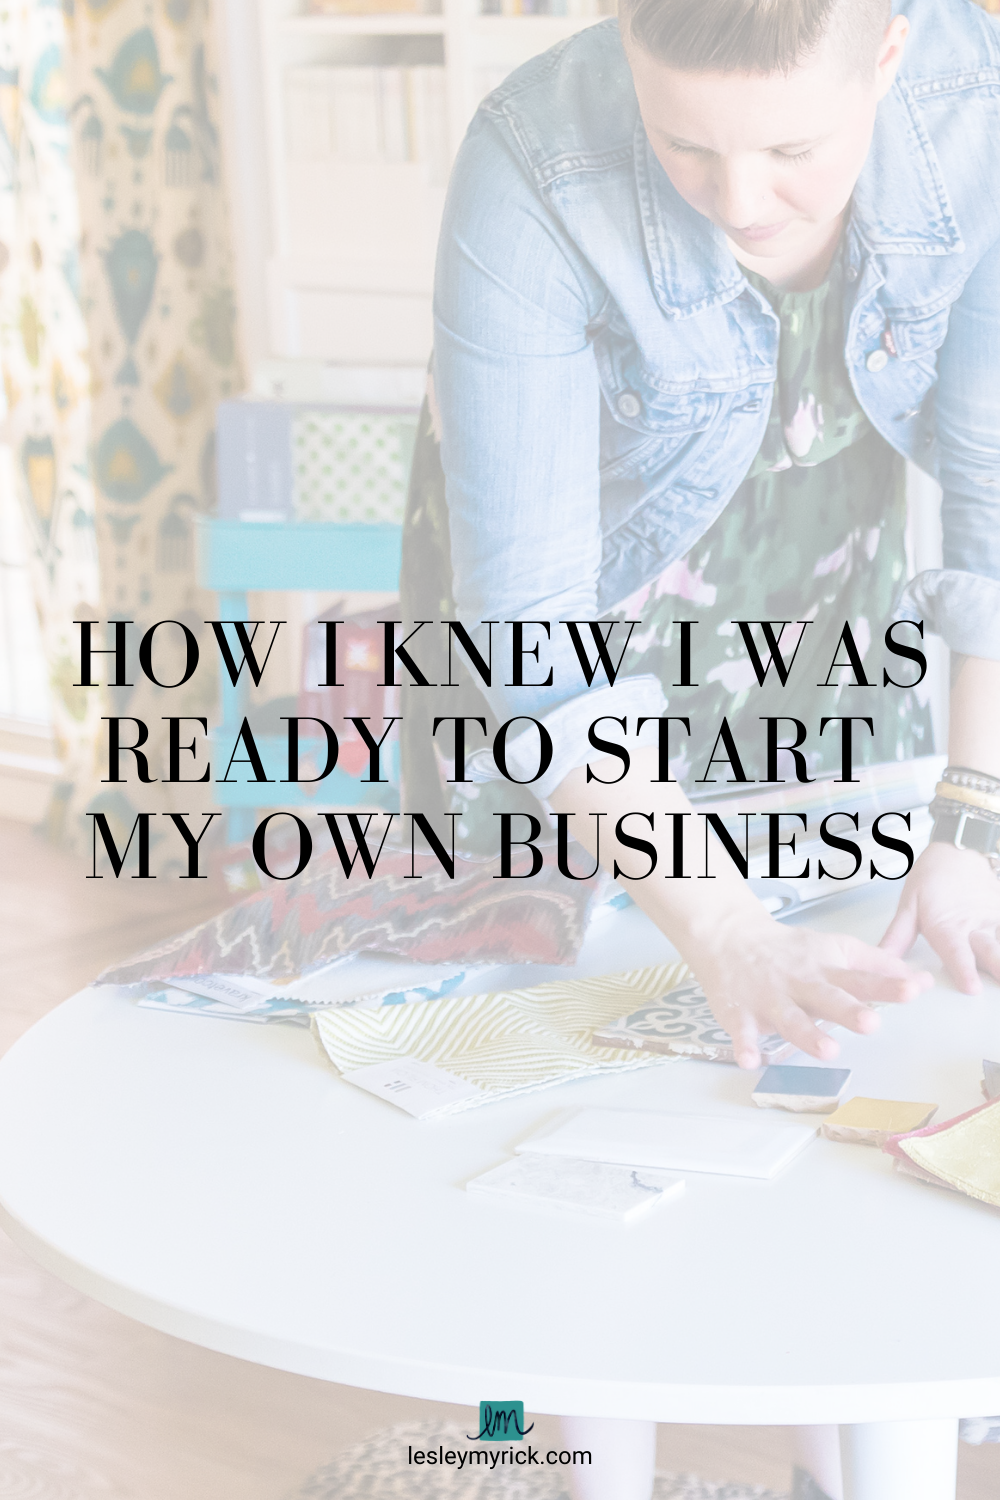 How I knew I was ready to start my own business - tips from Atlanta interior designer Lesley Myrick